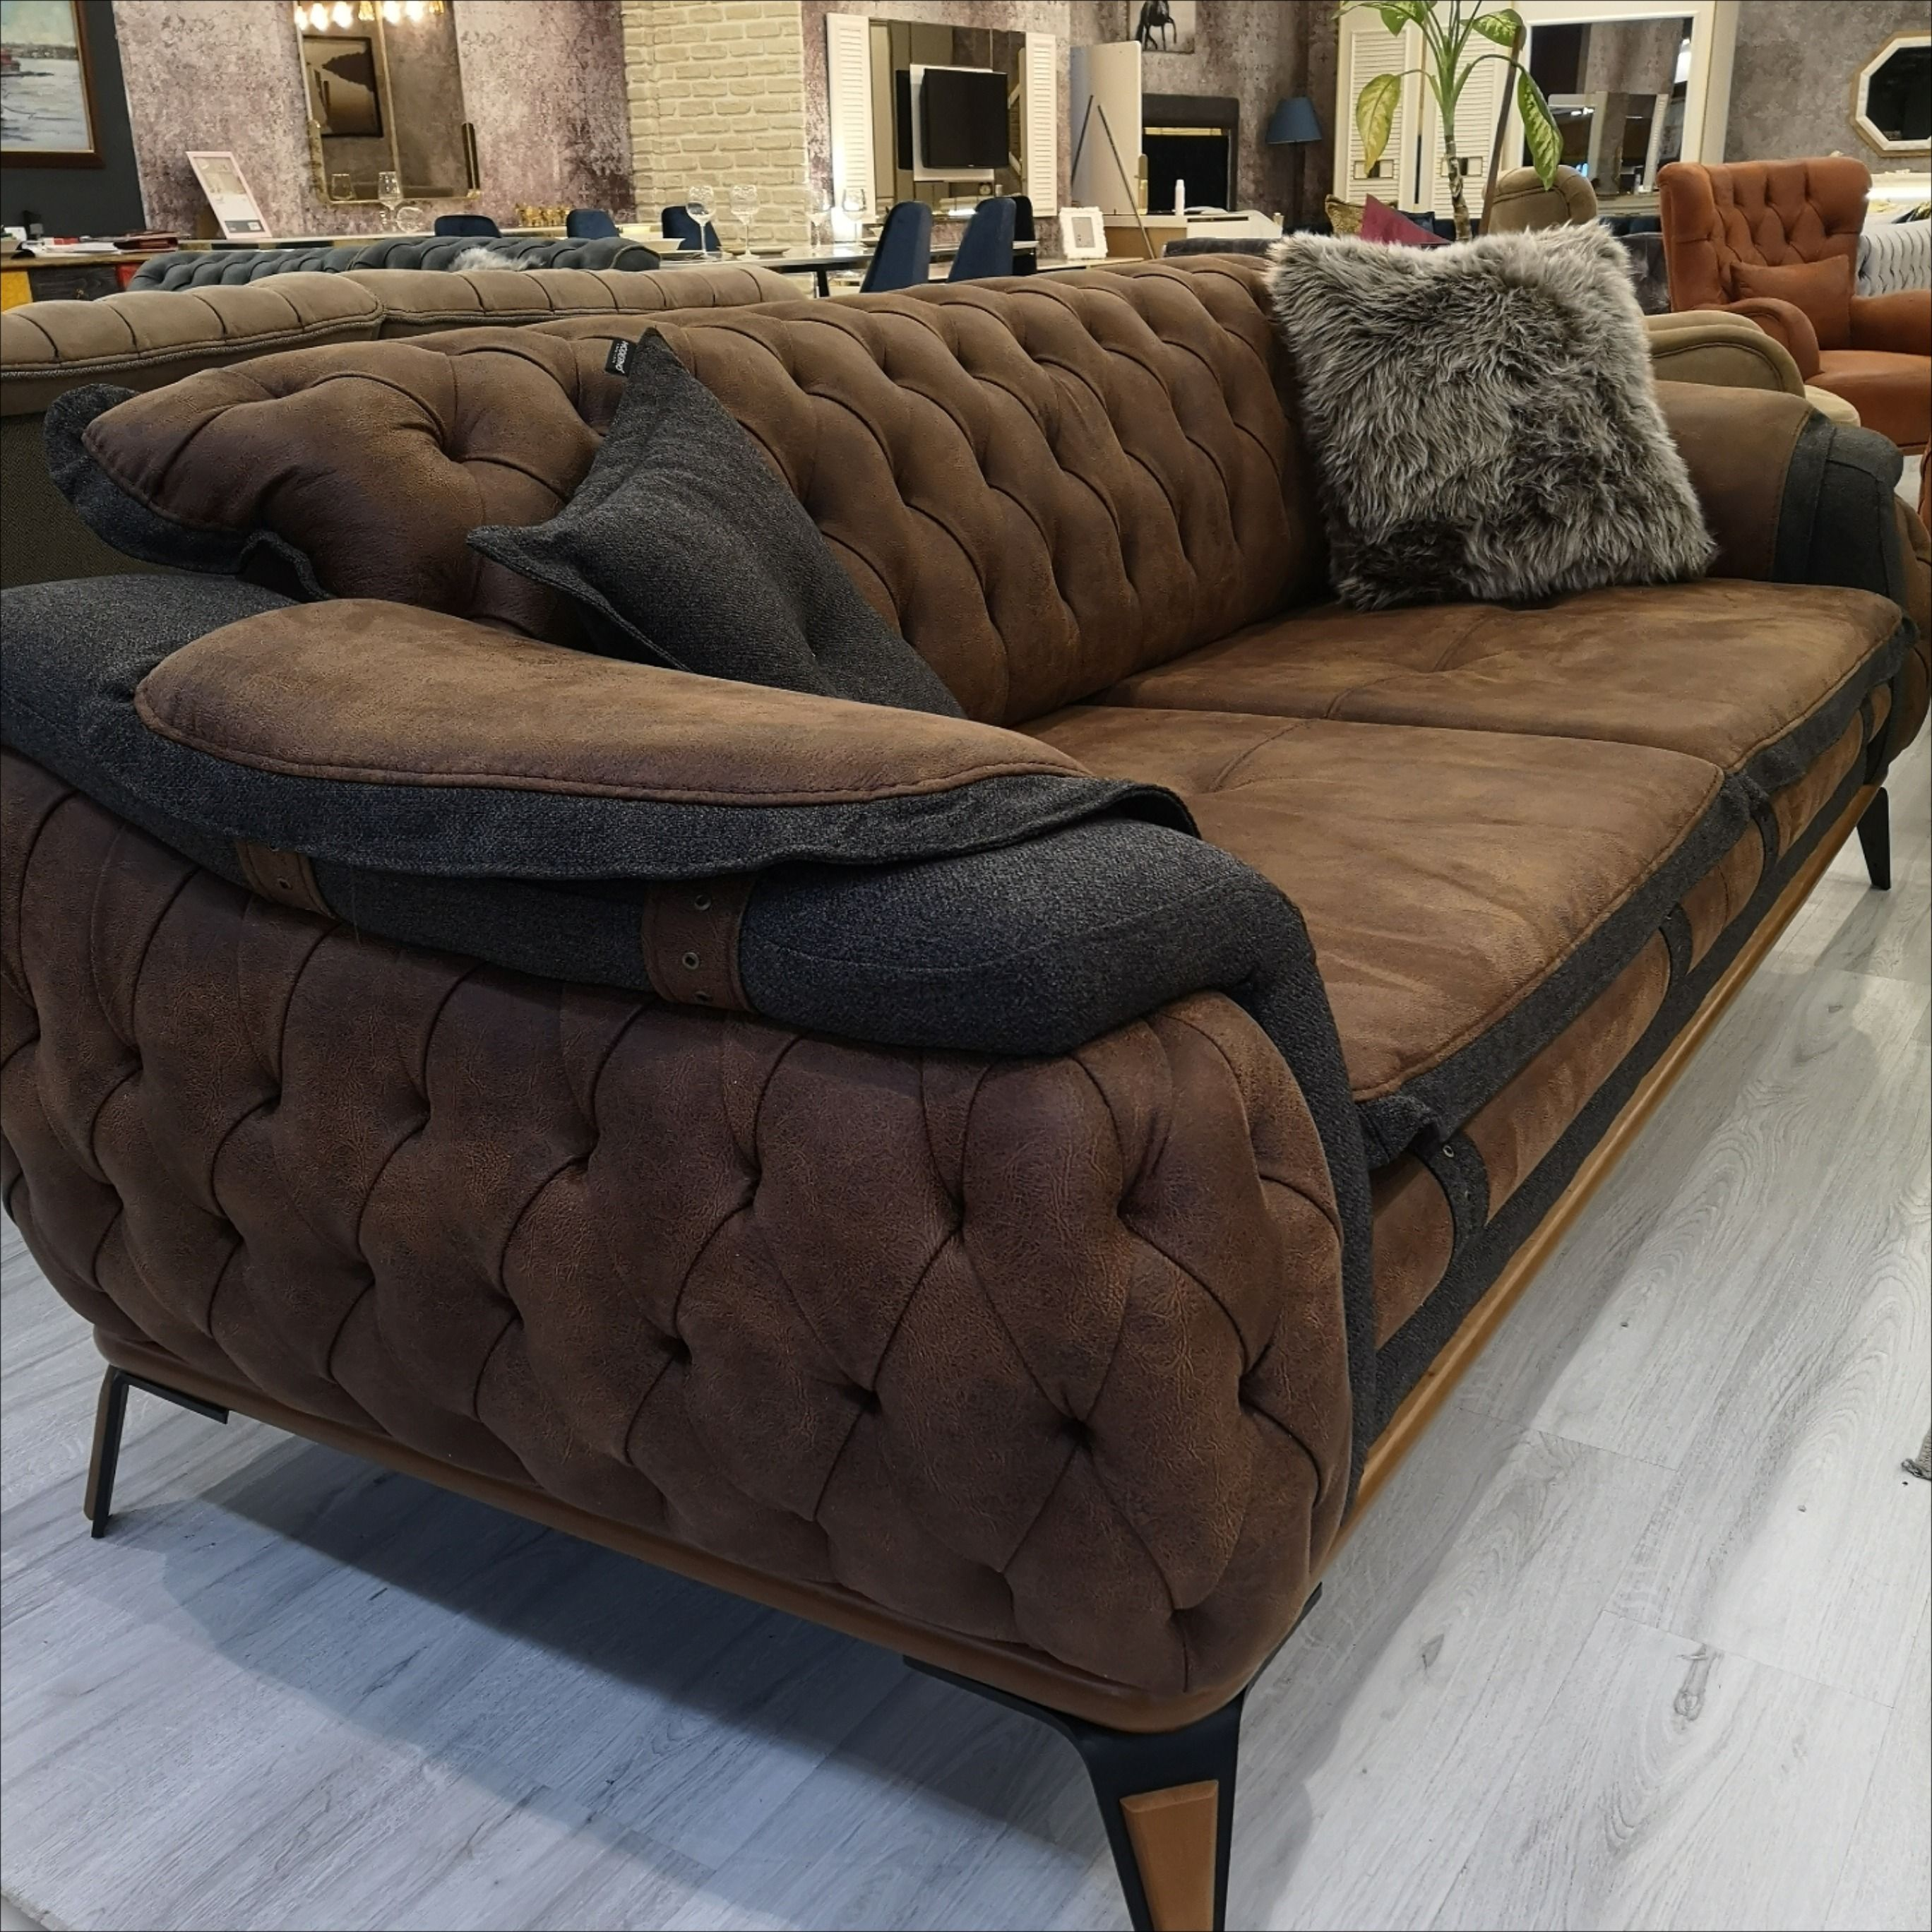 Bentley Koltuk Takimi In 2020 Sofa Couch Design Luxury Sofa Design Luxury Furniture Sofa